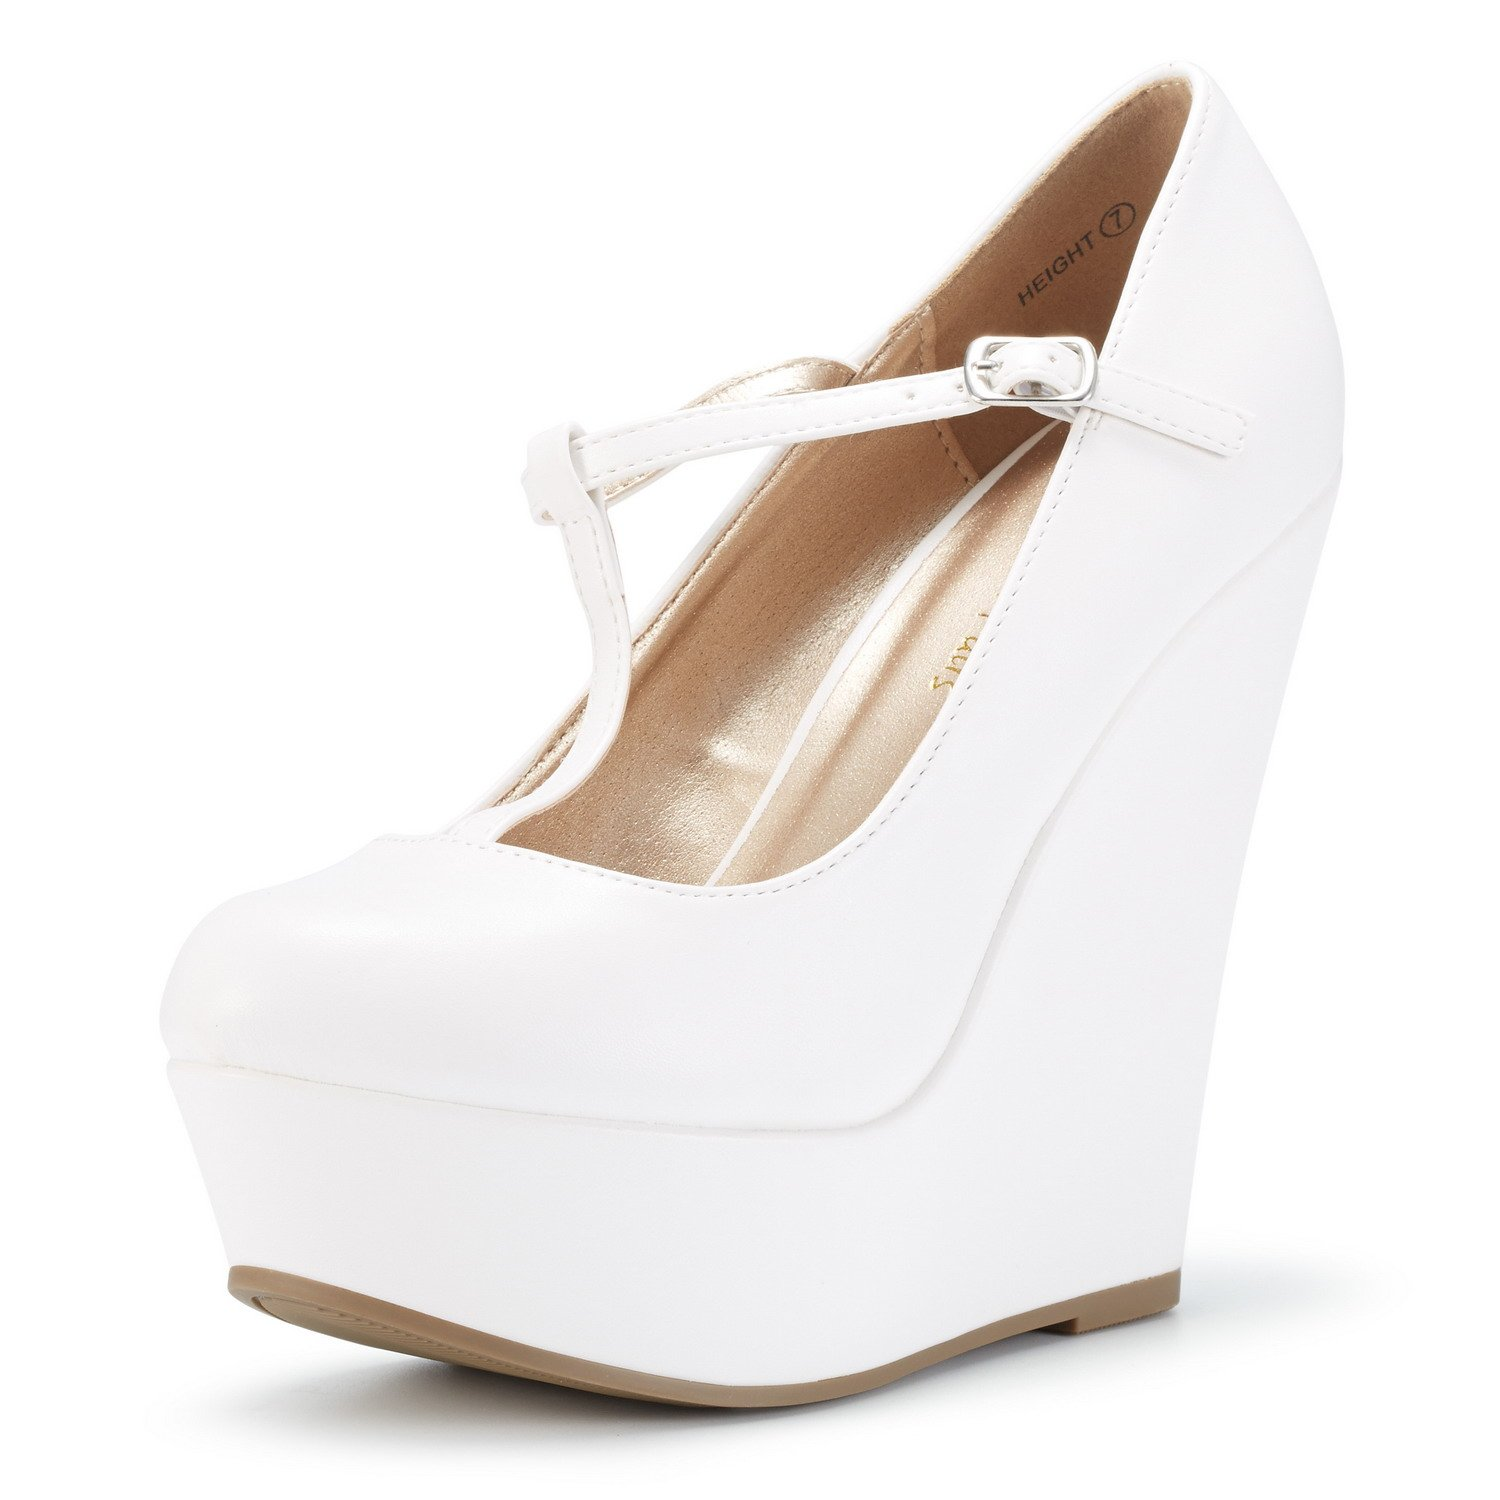 DREAM PAIRS Women's Wedge-Height White Pu Mary-Jane T-Strap Wedge Platform Pumps Shoes Size 6 B(M) US